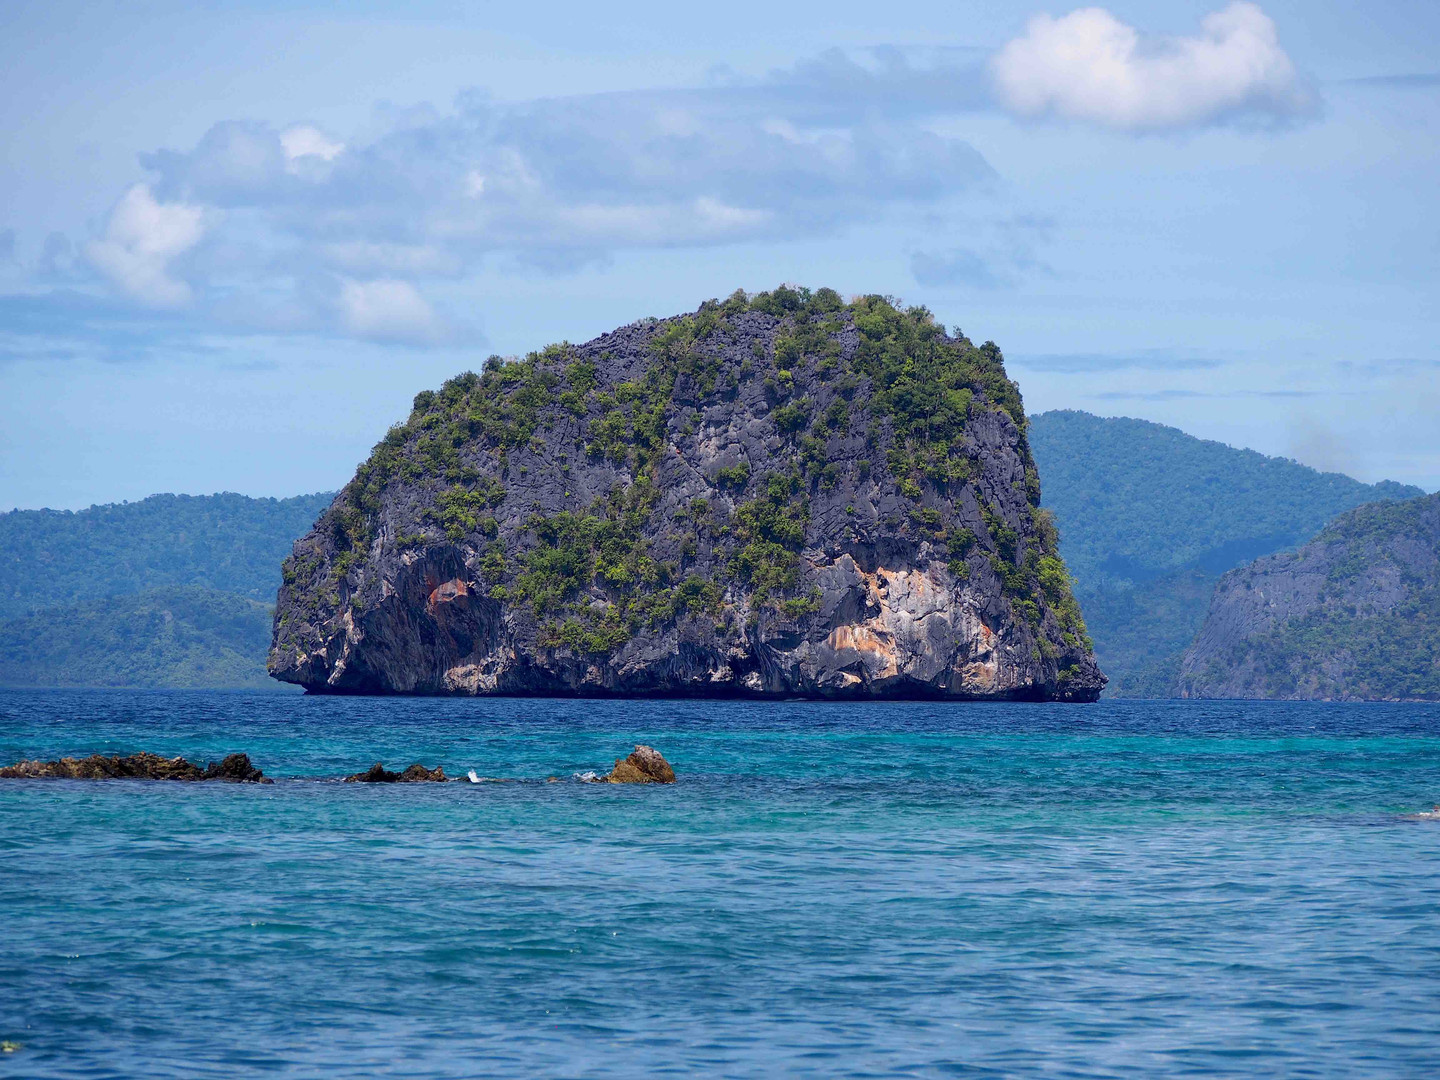 Turtle rock in Bacuit bay - Philippines